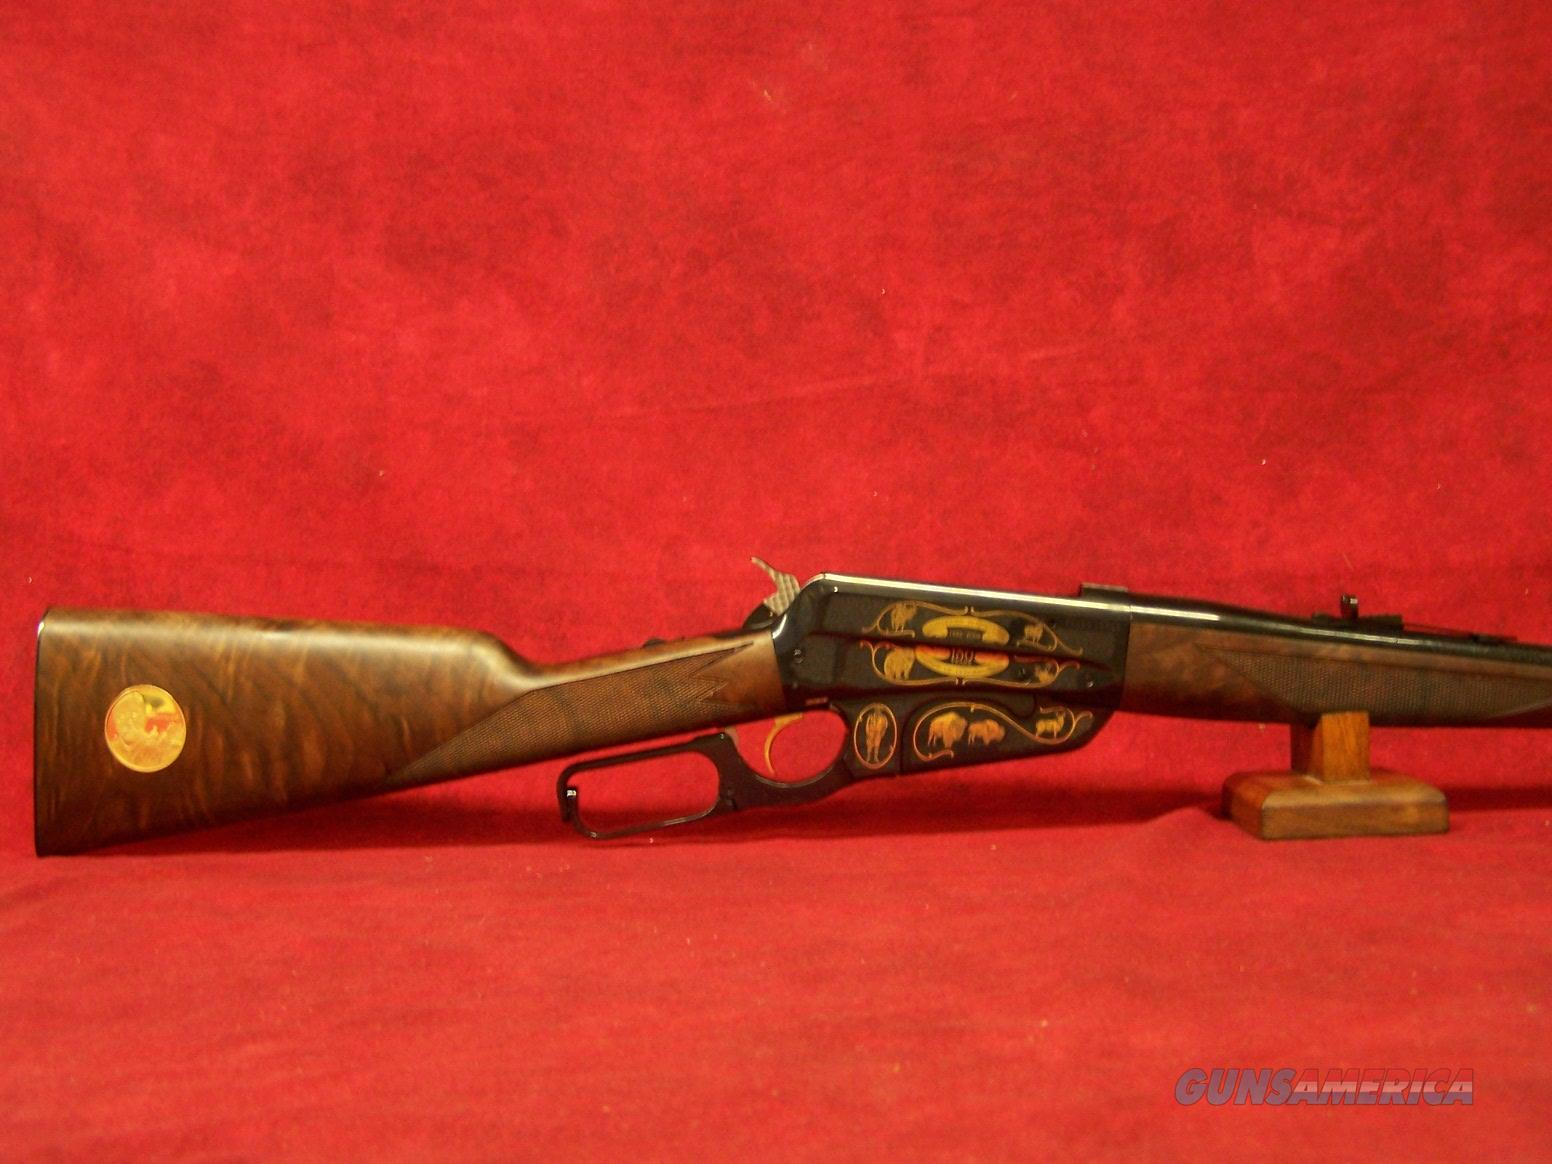 Winchester 1895 Teddy Roosevelt 150th Annv. Custom Grade .405 Win. (534151154)  Guns > Rifles > Winchester Rifle Commemoratives